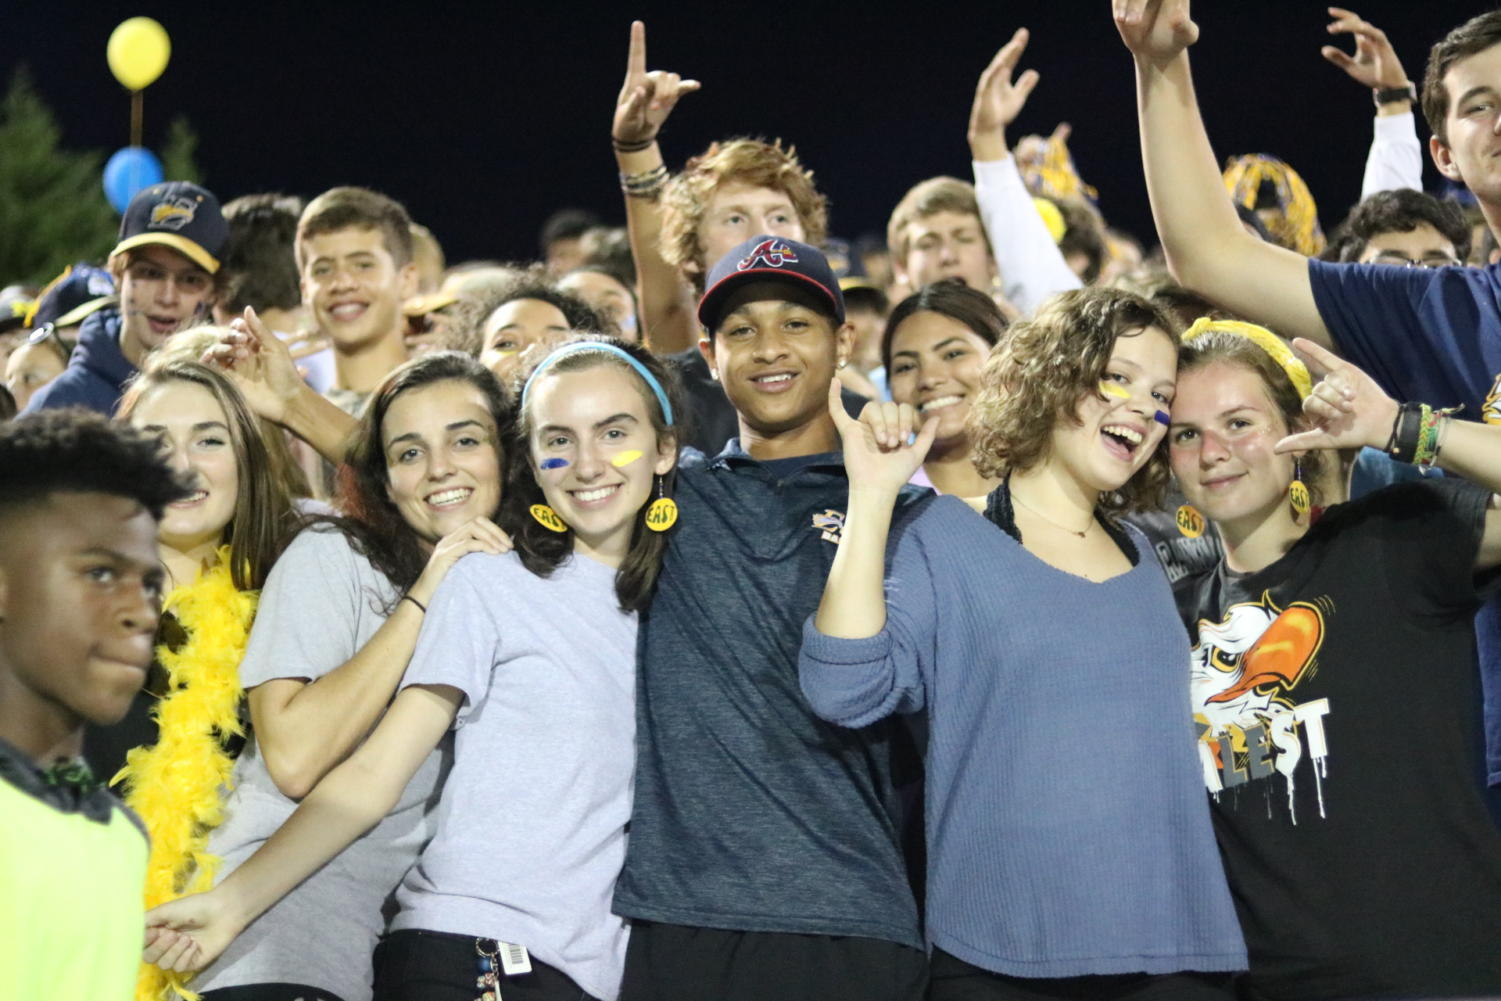 The student section during the homecoming game.